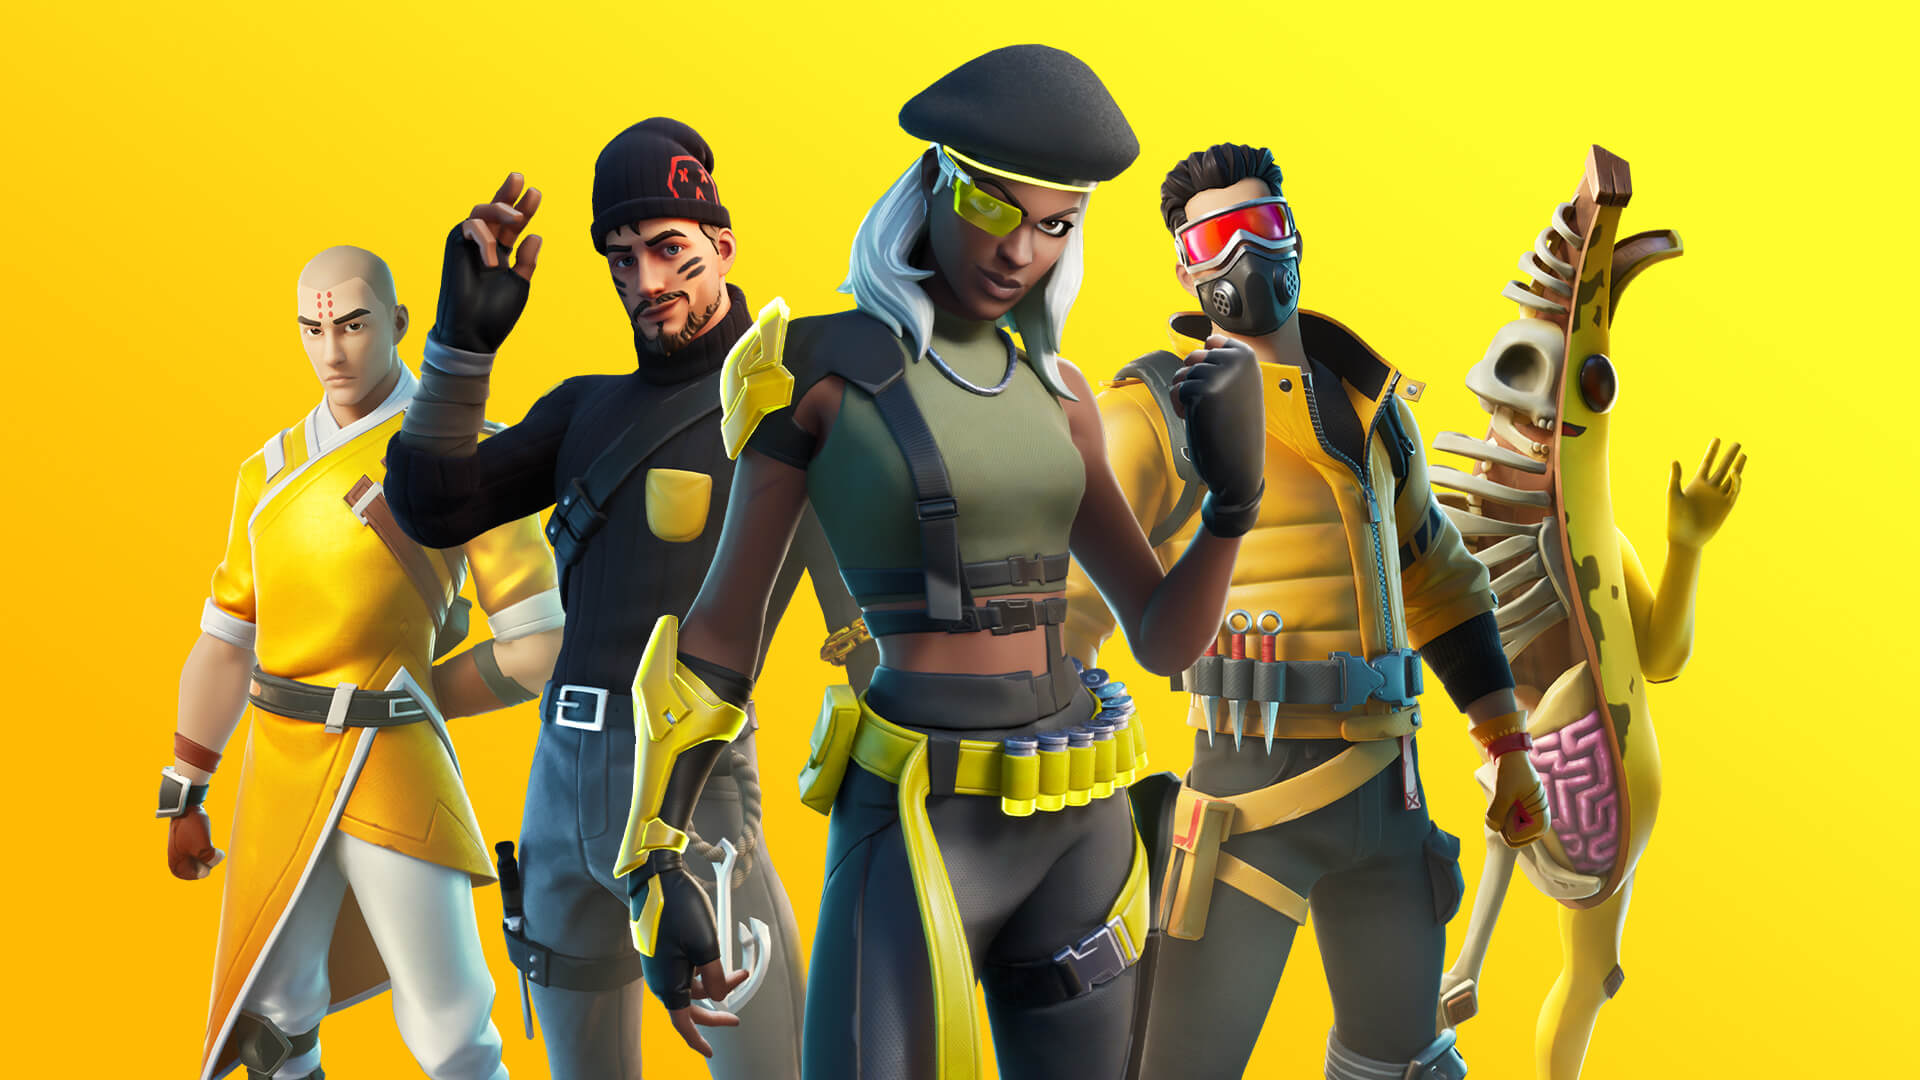 Ninja Battles featuring Fortnite: How to watch, start time